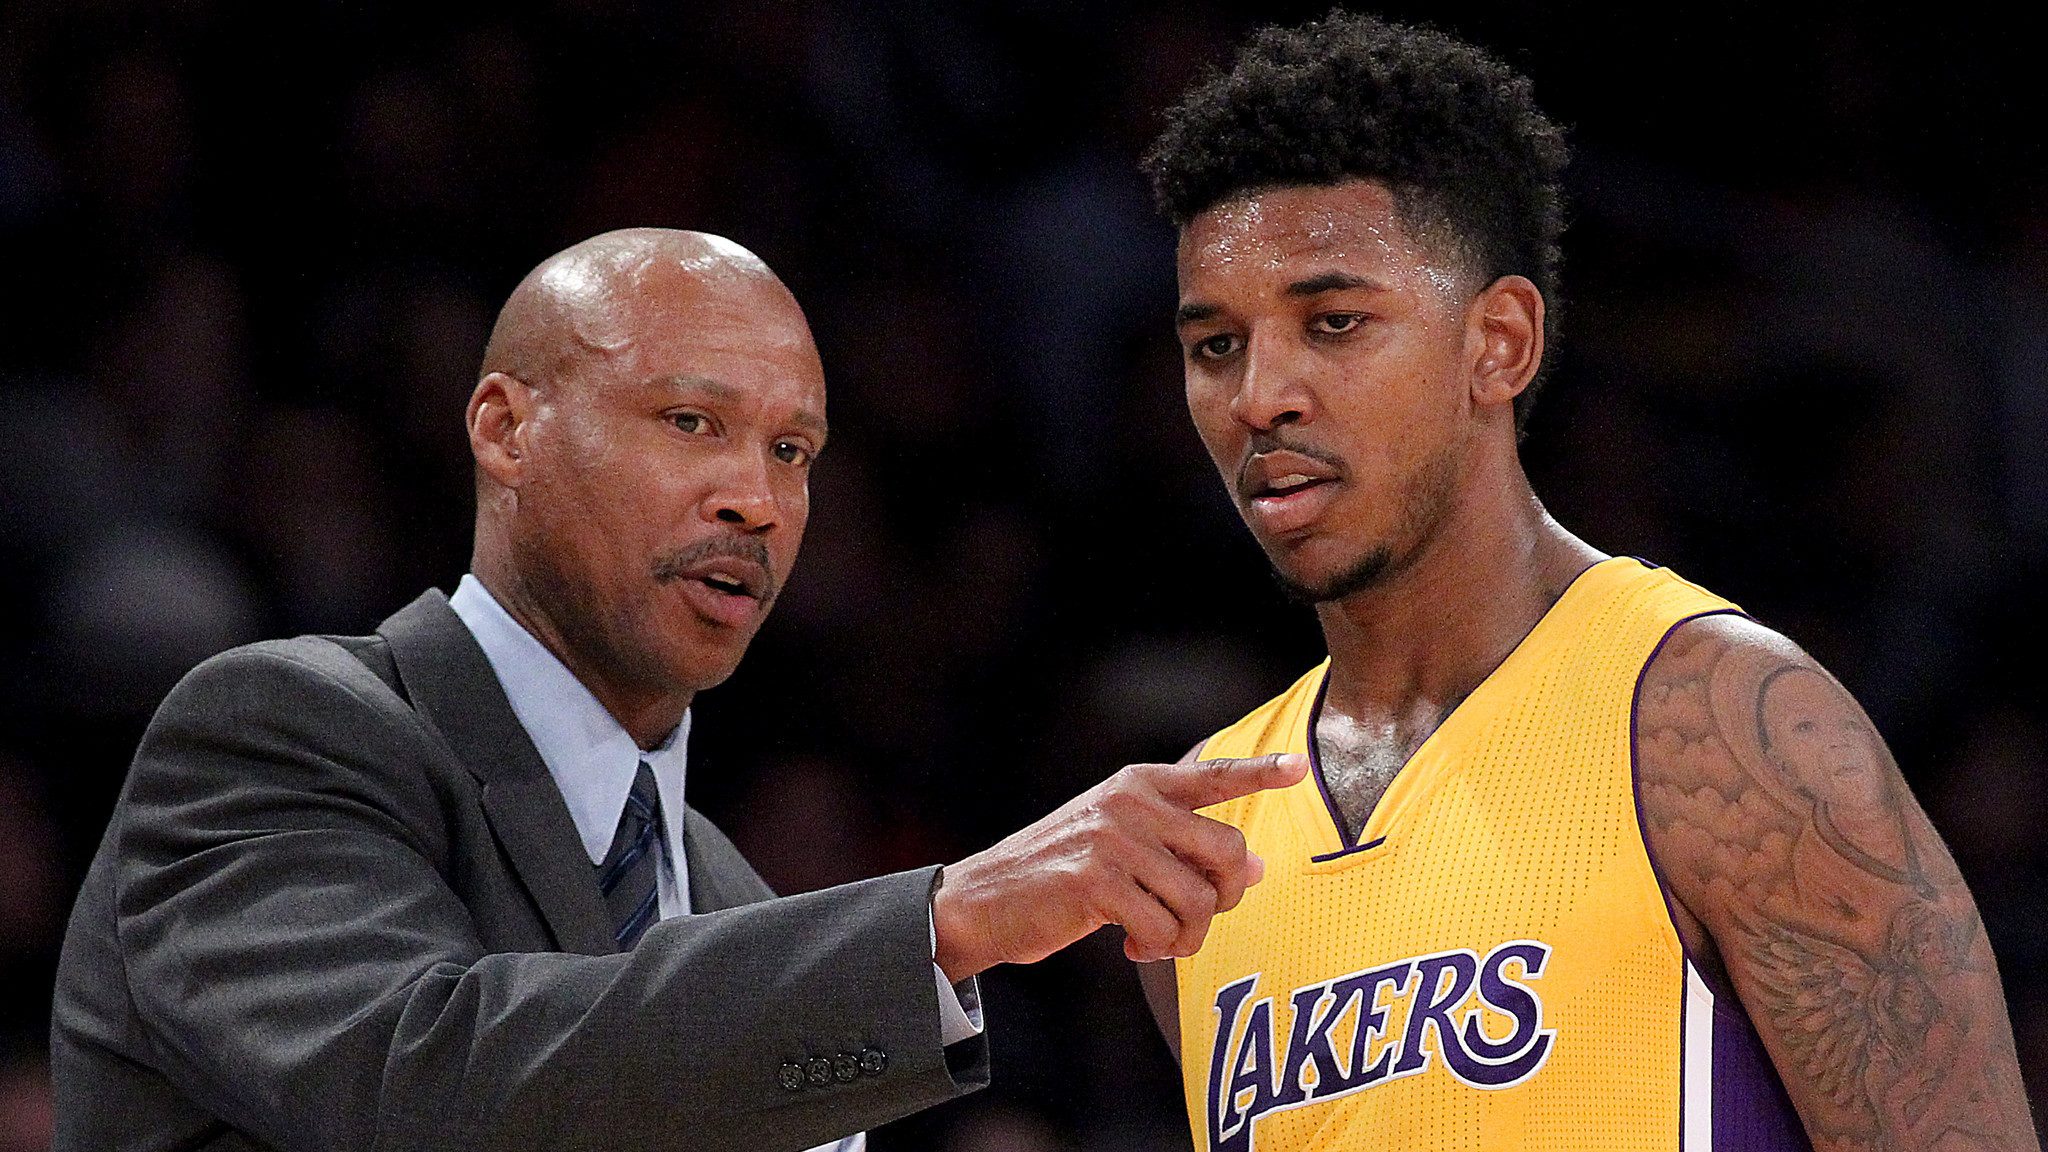 LOS ANGELES, CALIF. - DEC. 9, 2014.  Lakers coach Byron Scott talks with swingman Nick Young in the fourth quarter Tuesday, Dec. 9, 2014, at Staples Center in Los Angeles.  (Luis Sinco/Los Angeles Times)